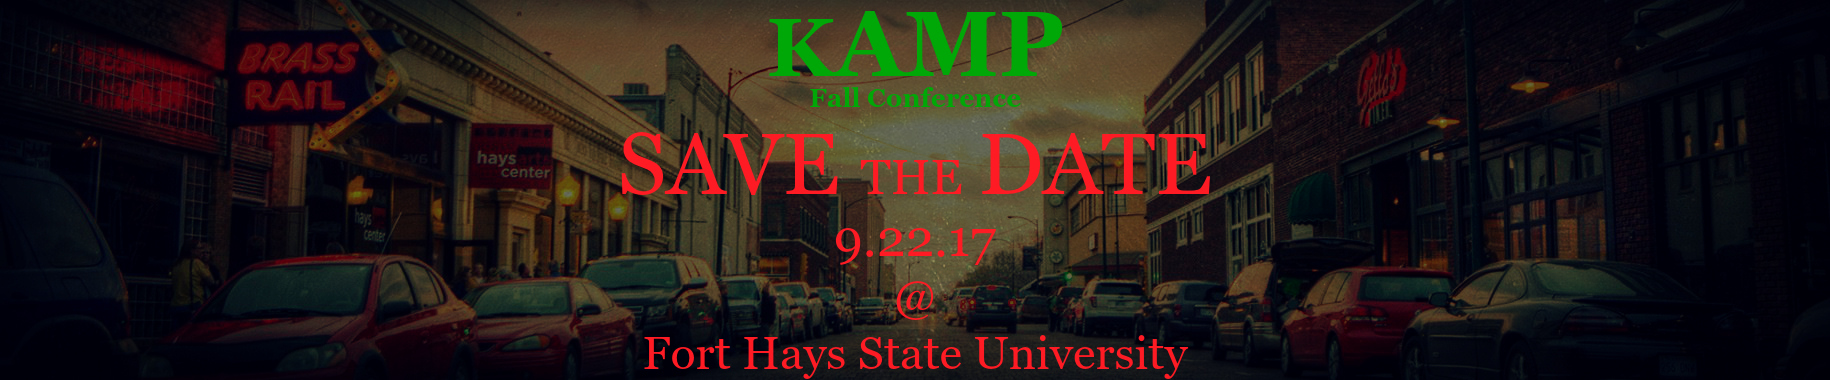 Save the Date KAMP Fall Conference